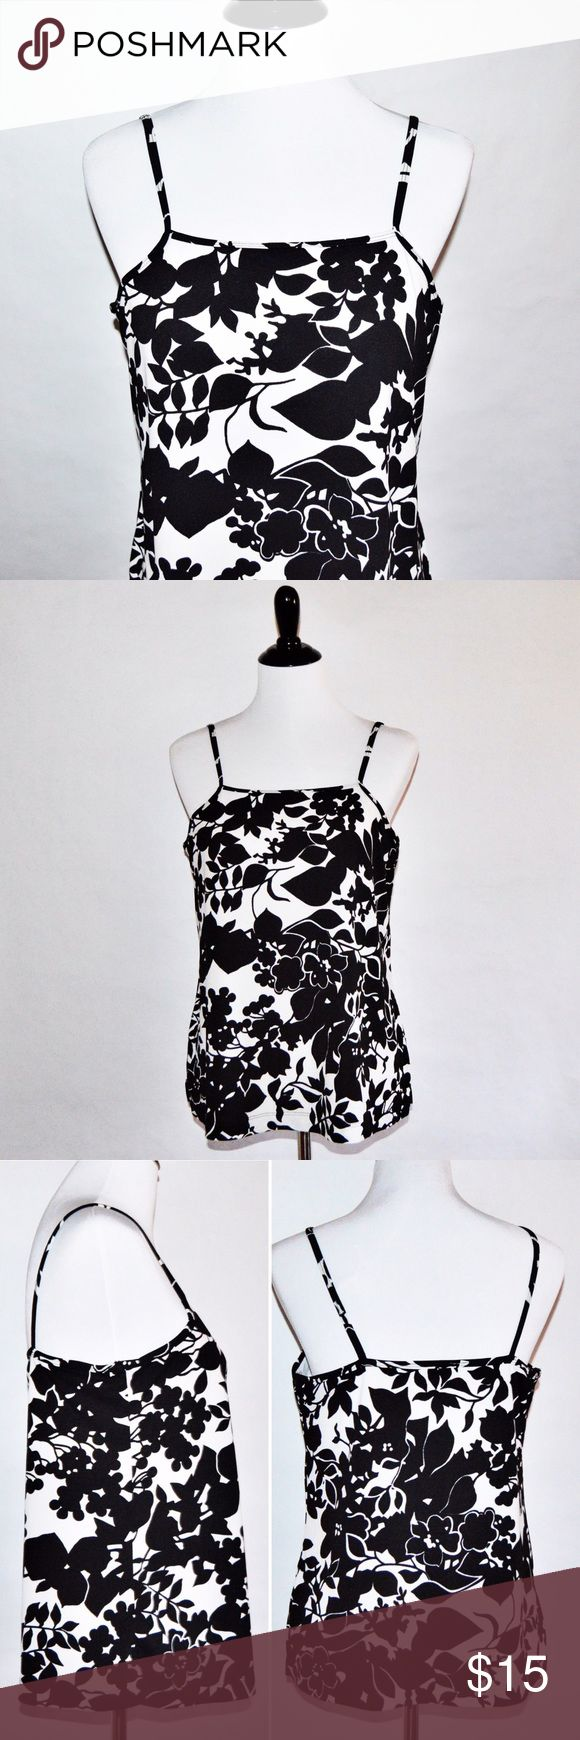 "Floral Black & White Tomorrow's Mother Cami / Top Floral Black & White Tomorrow's Mother Cami / Top  Great cami or top for during and after pregnancy. Stretchy and very pretty. Elastic band under the built in bra coming out in one side. The tag is missing so I don't know what it's made out of or the size but I'm guessing a M/L  Measurements Chest:17"" across / 34"" around, Length:25""  🔆Bundle 2 items = 10% OFF 🔆Bundle 3 or more = MAKE OFFER ❌ No Trades Tomorrow's Mother Tops"